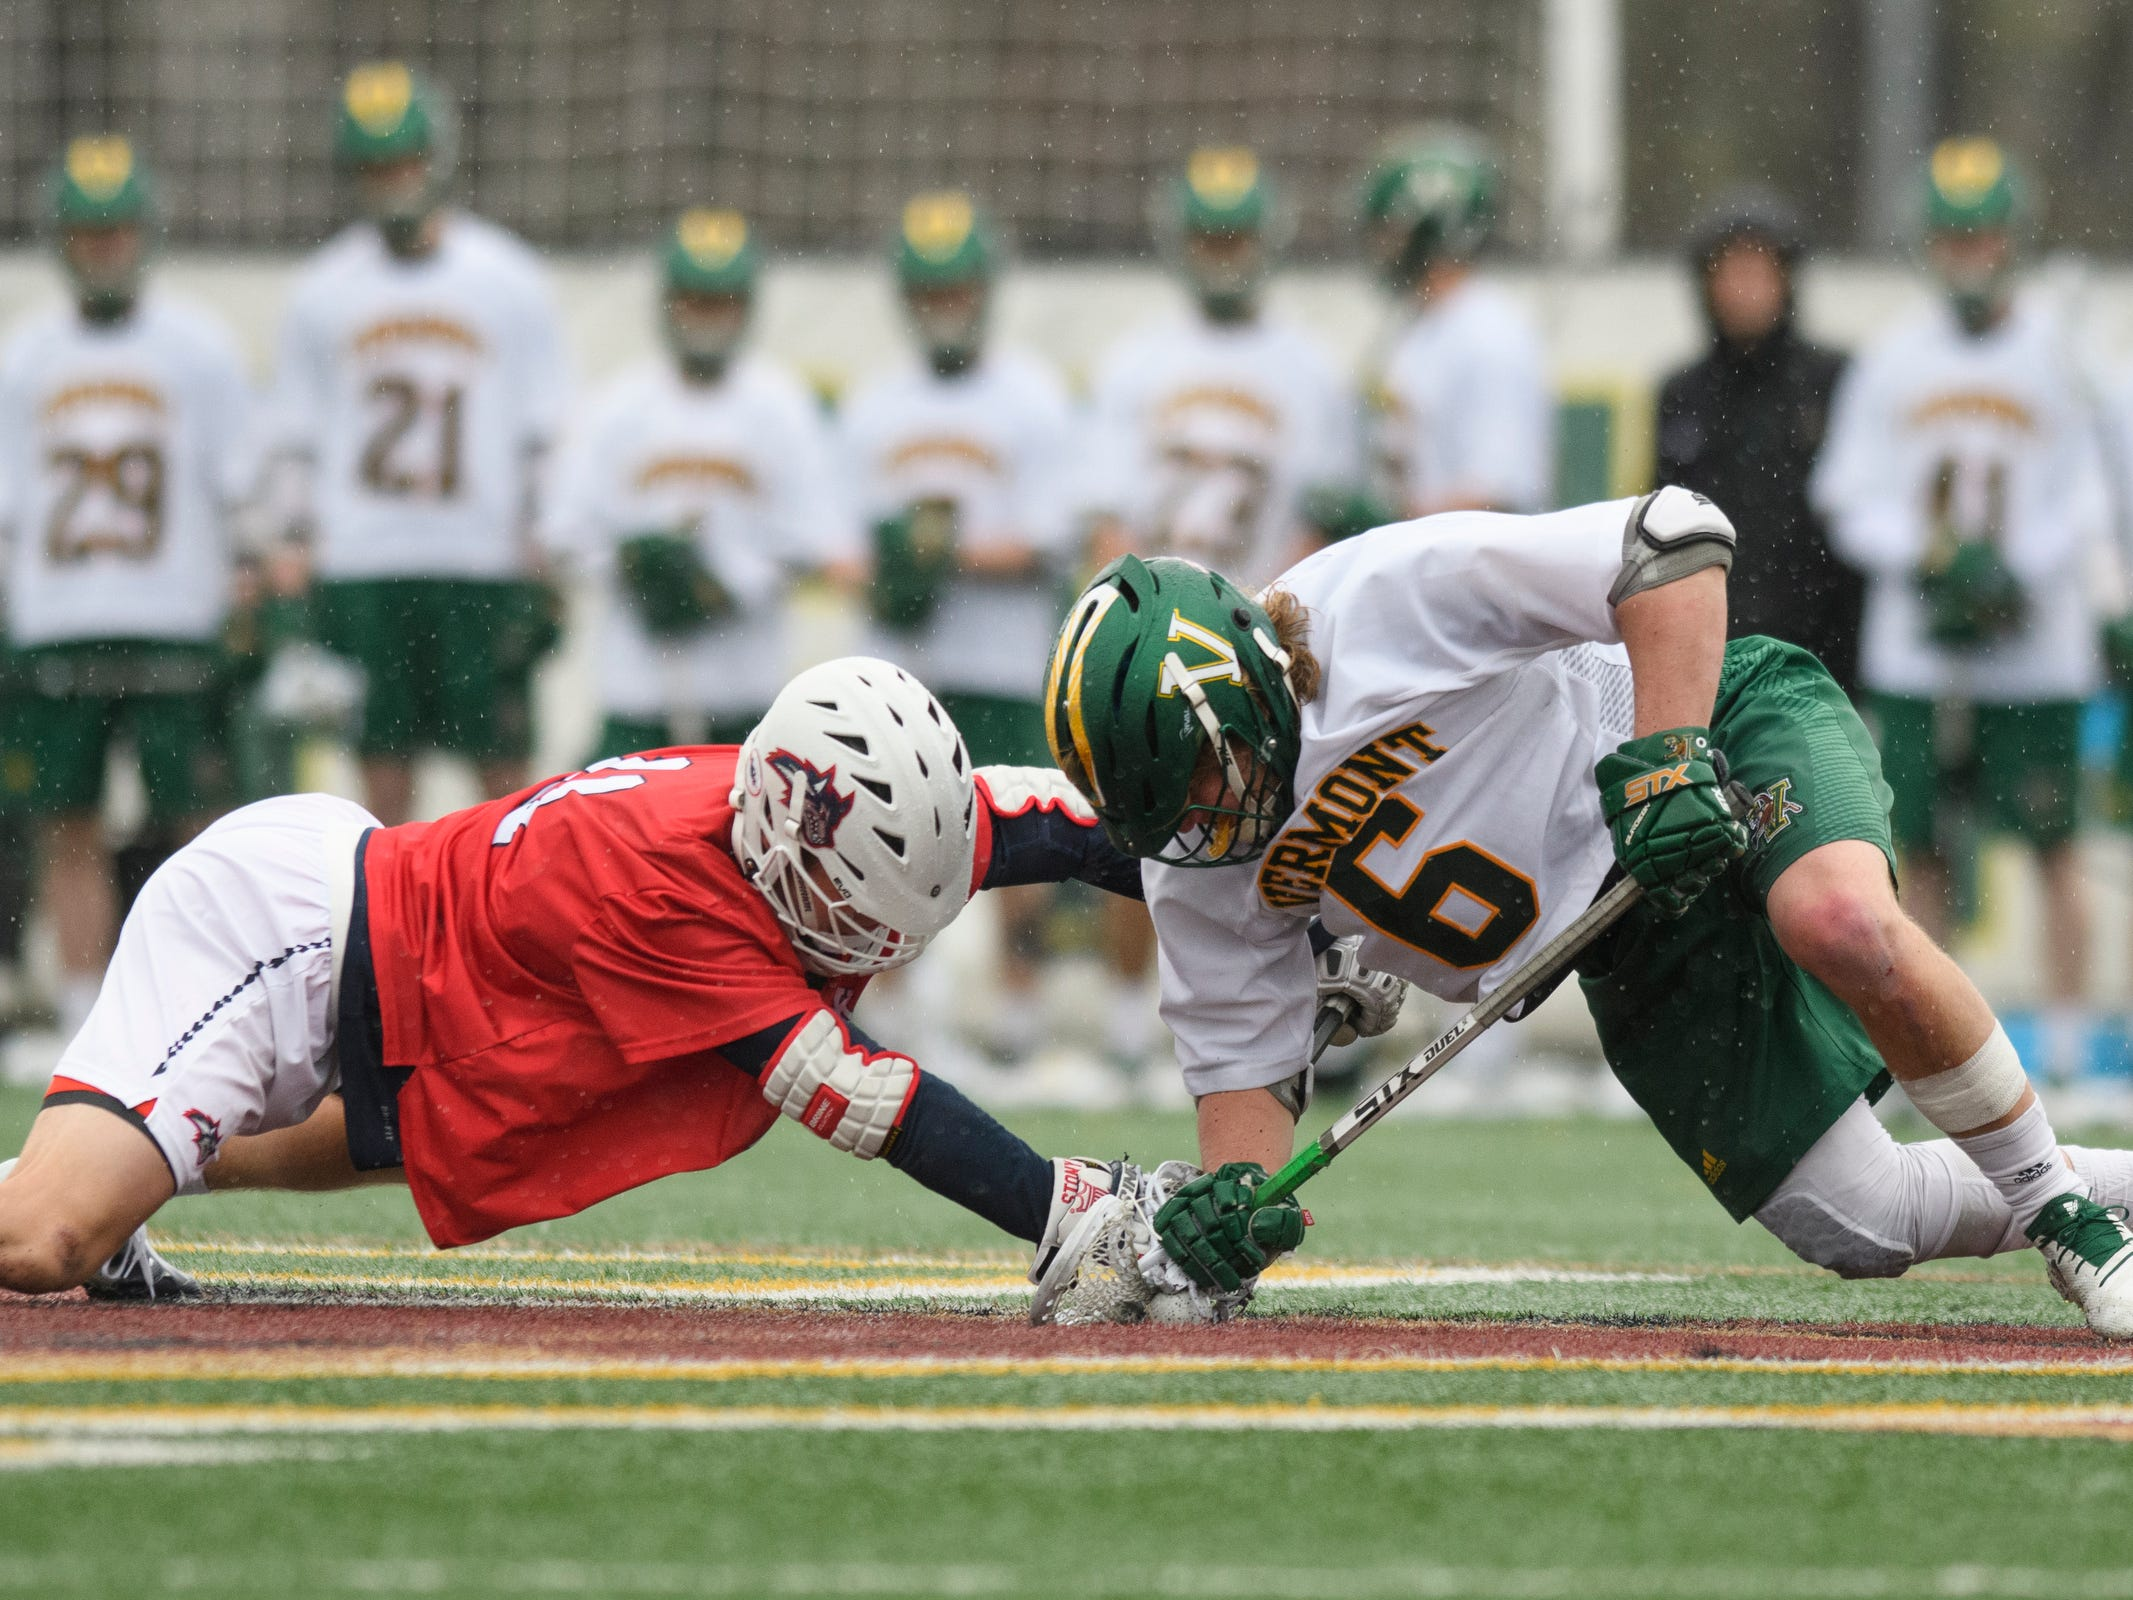 Vermont's Alex Semler (6) battles for the tip off with Stony Brook's David Estrella (14) during the men's lacrosse game between the Stony Brook Sea Wolves and the Vermont Catamounts at Virtue Field on Saturday afternoon April 20, 2019 in Burlington, Vermont.